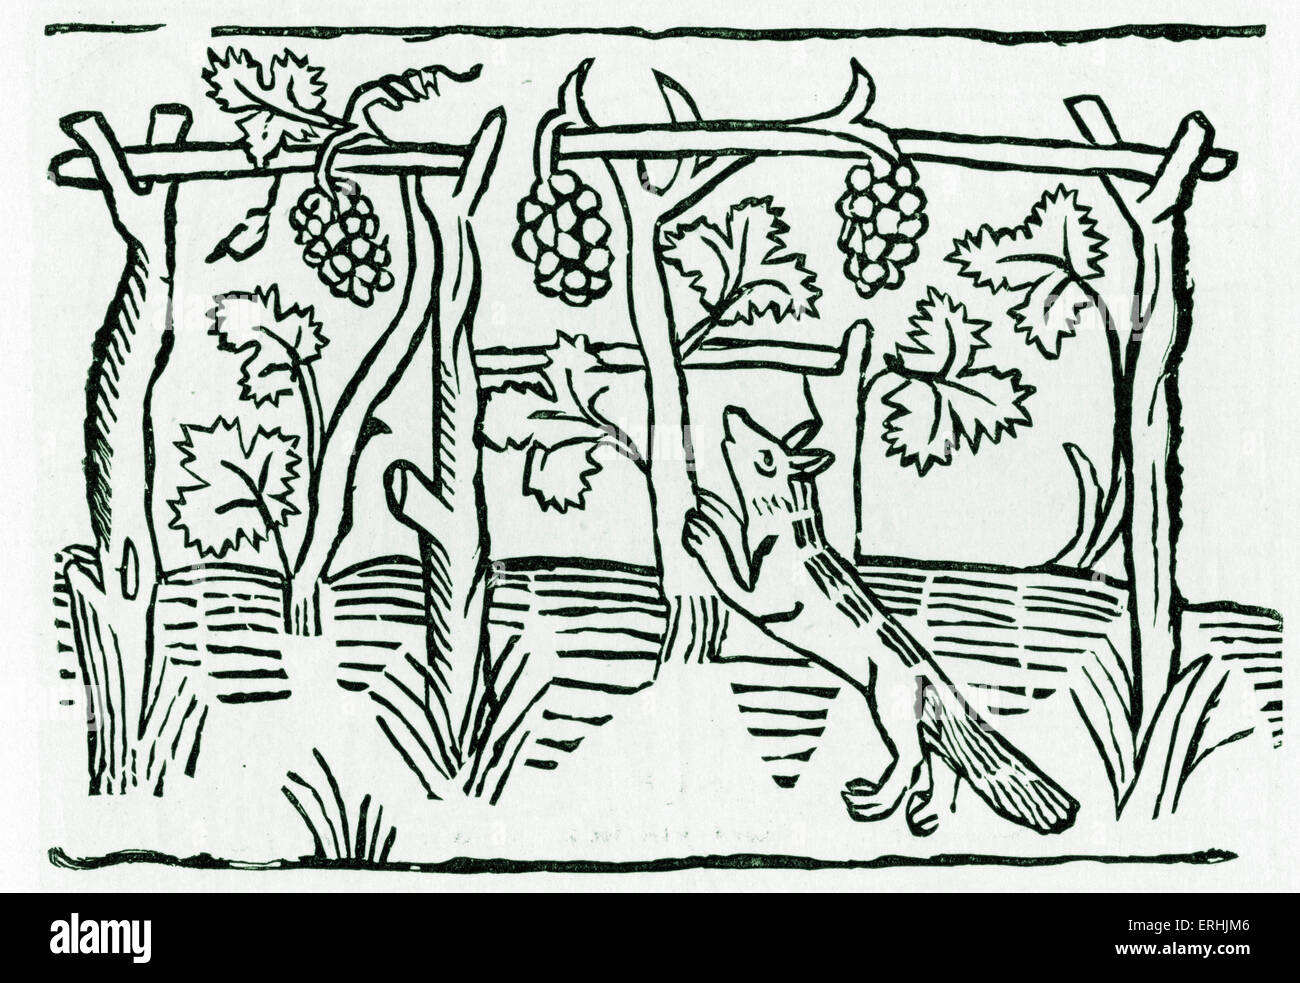 Aesop 's fable The Fox and The Grapes - illustration of the fox trying to reach the grapes. From Caxton 's - Stock Image